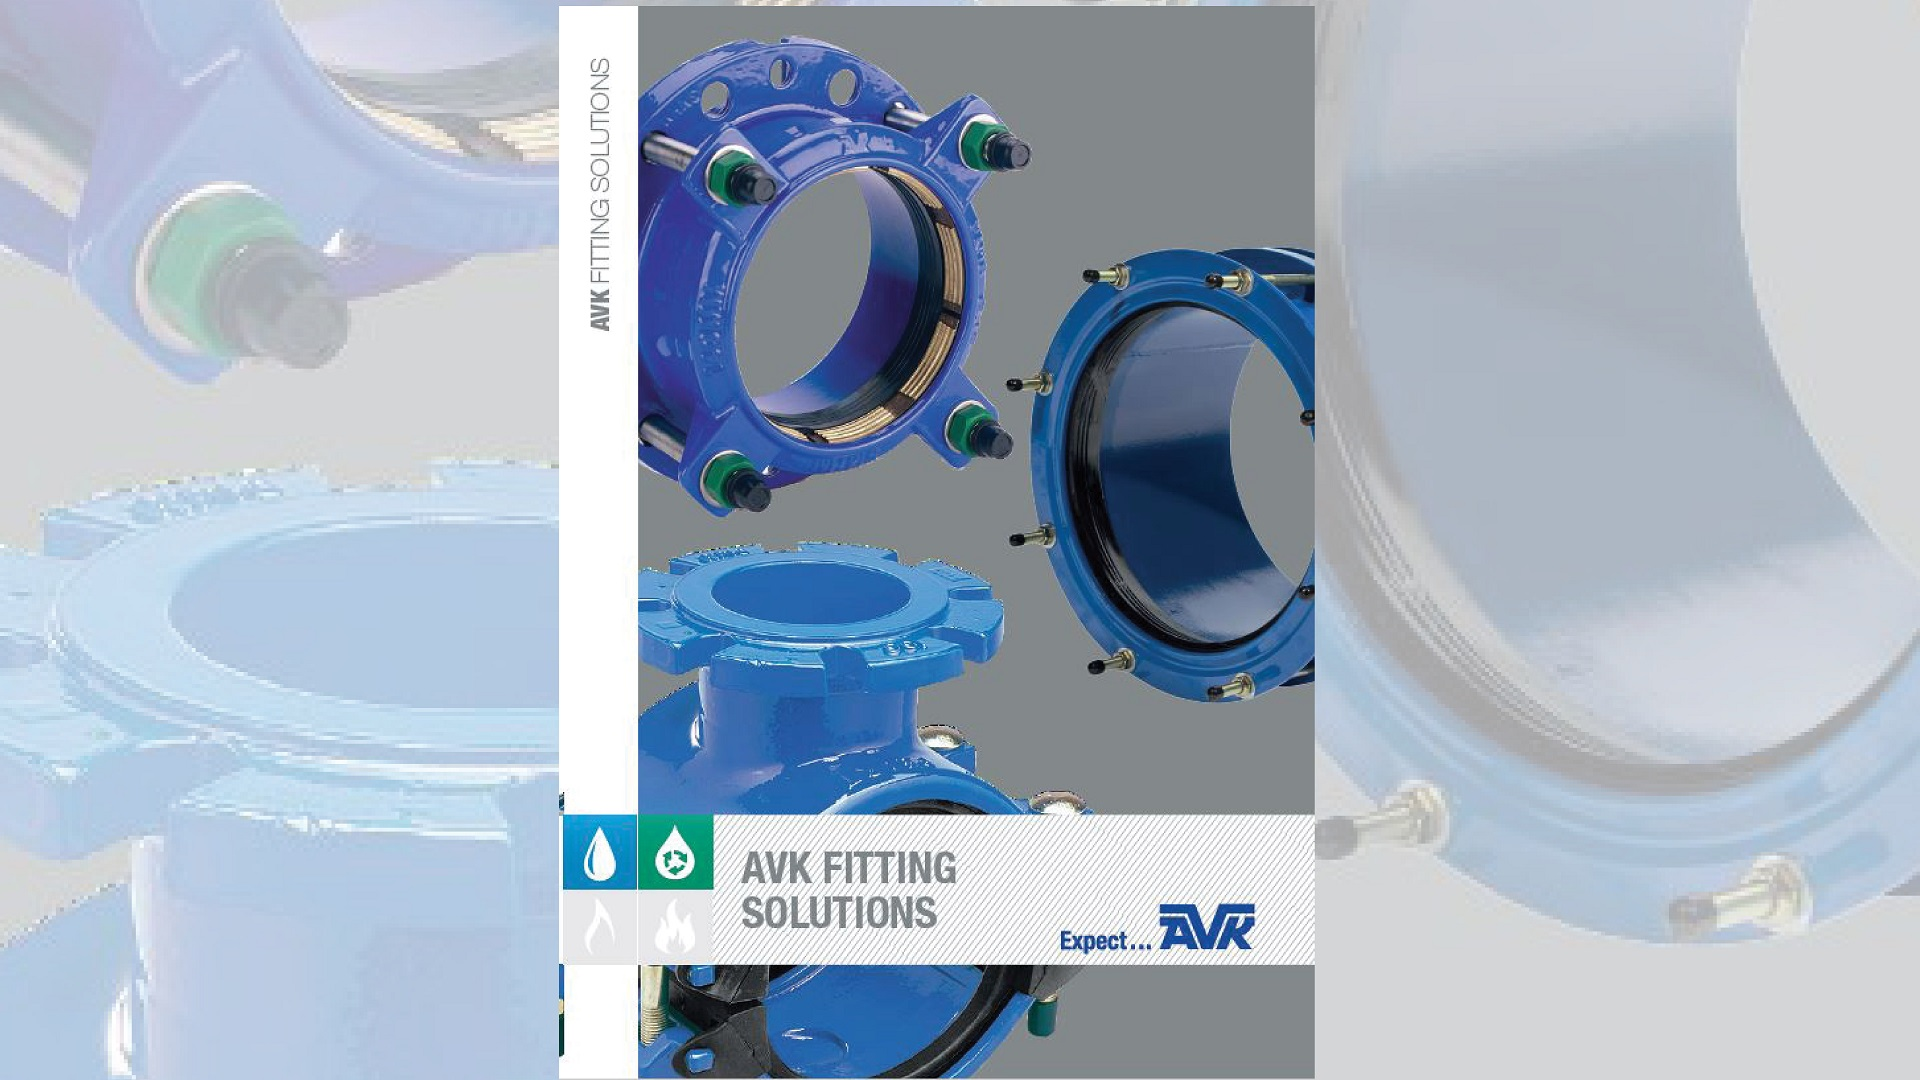 AVK UK Fittings